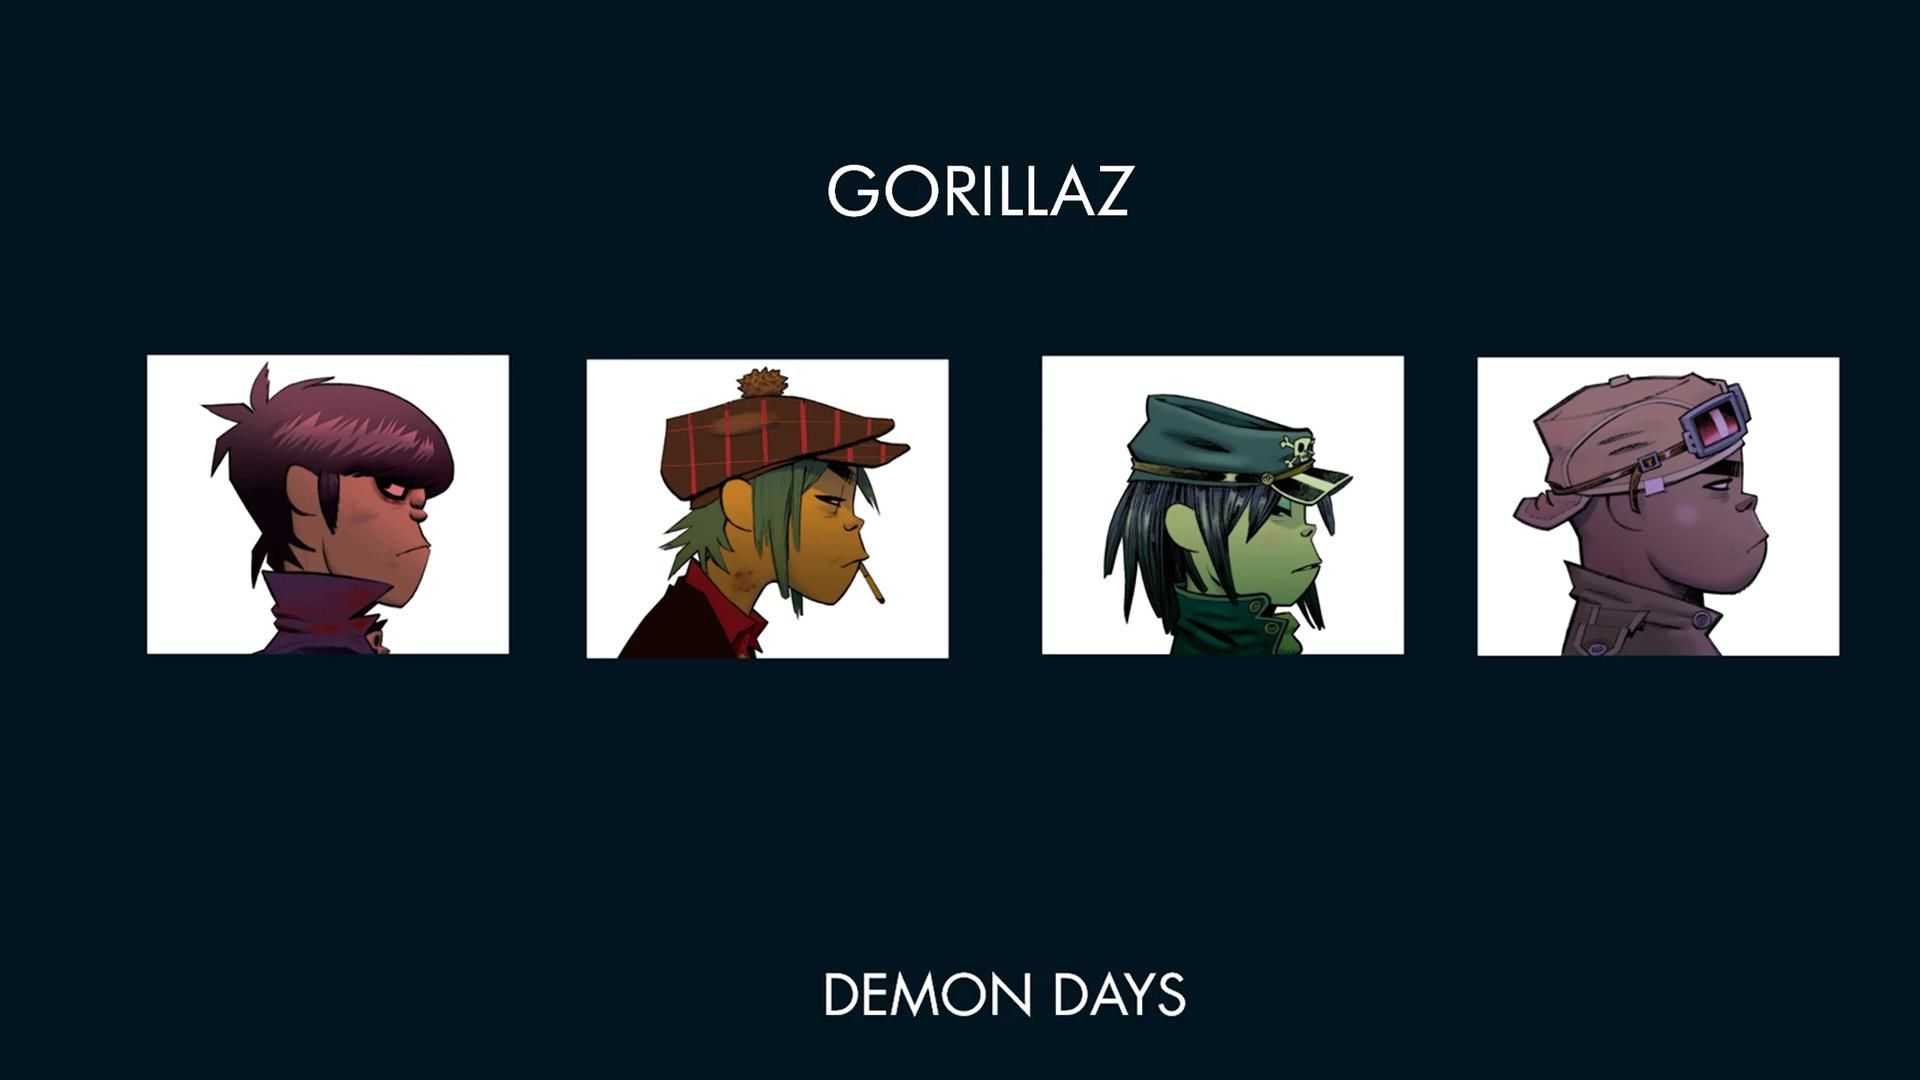 1920x1080 Uninspired Gorillaz Wallpaper In 2019 Gorillaz